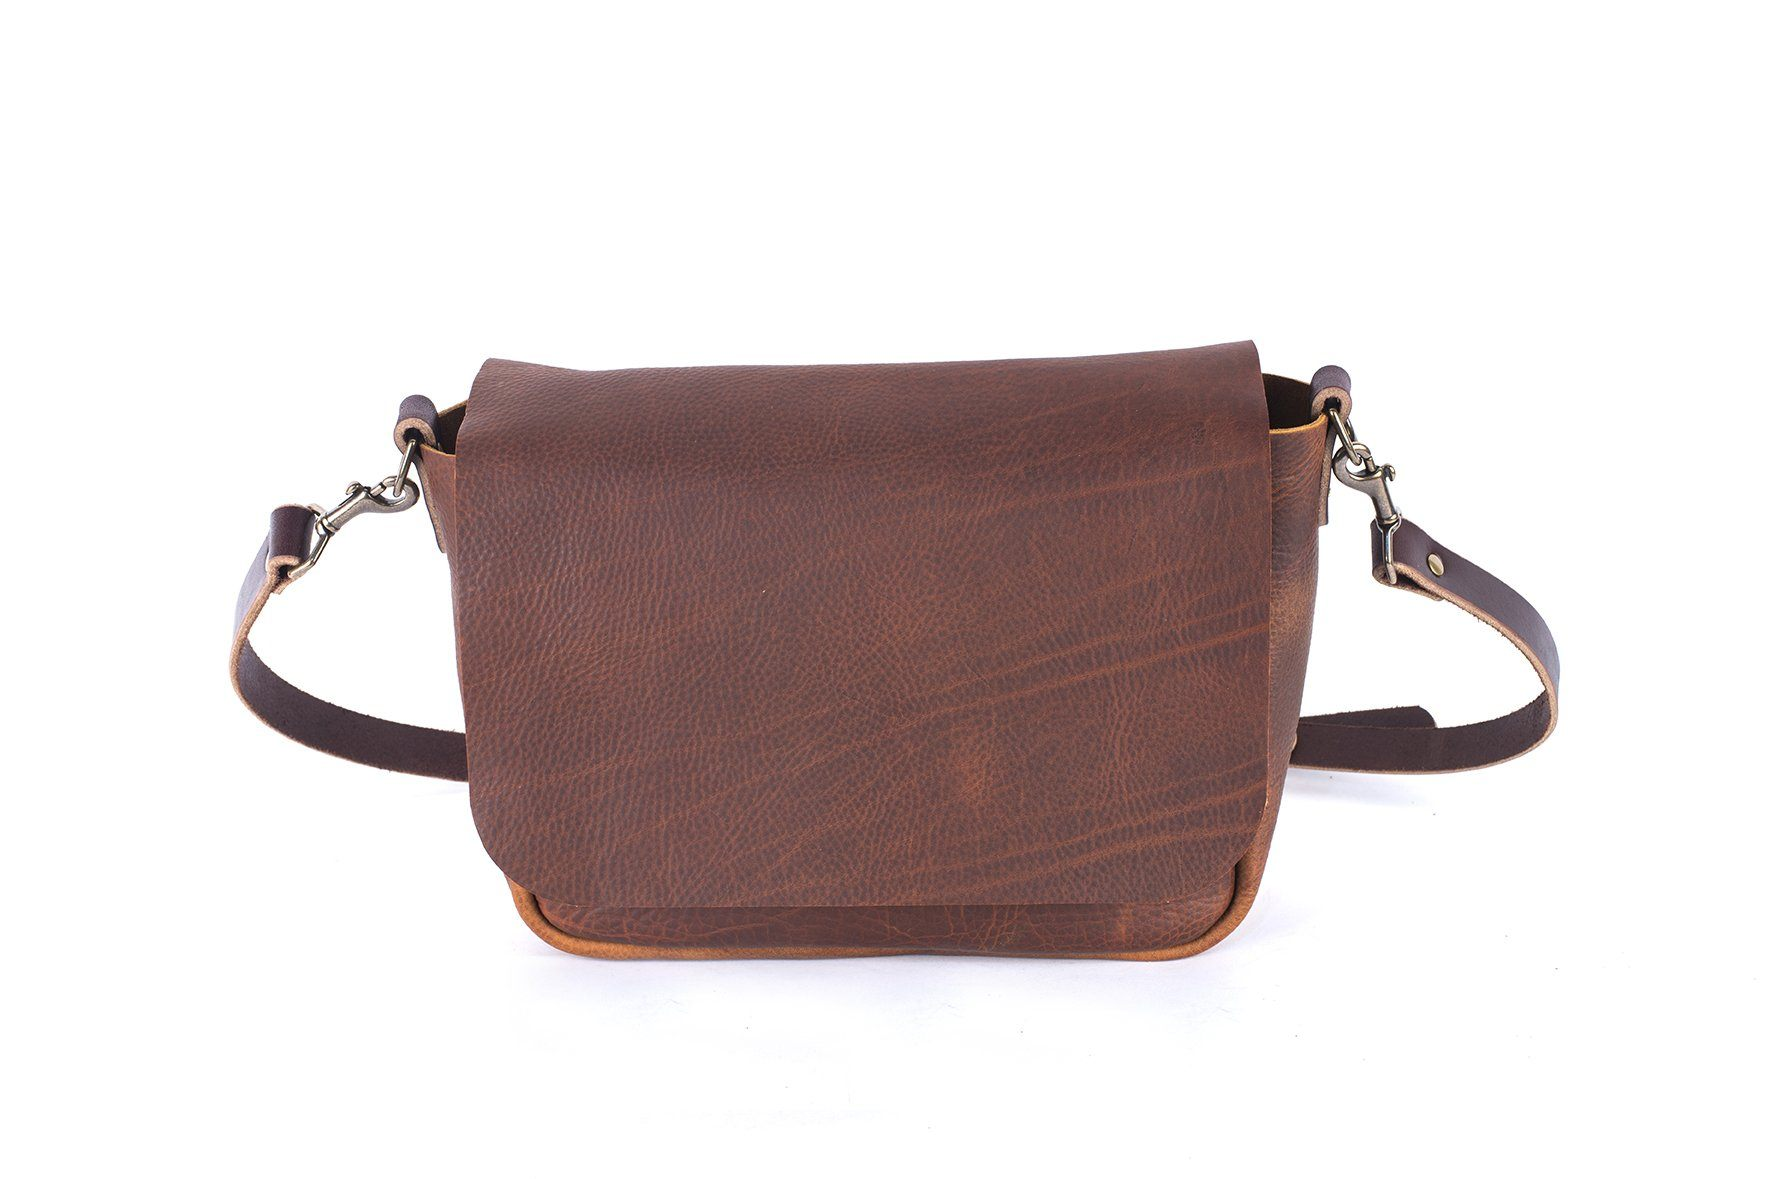 KINDLE LEATHER SATCHEL